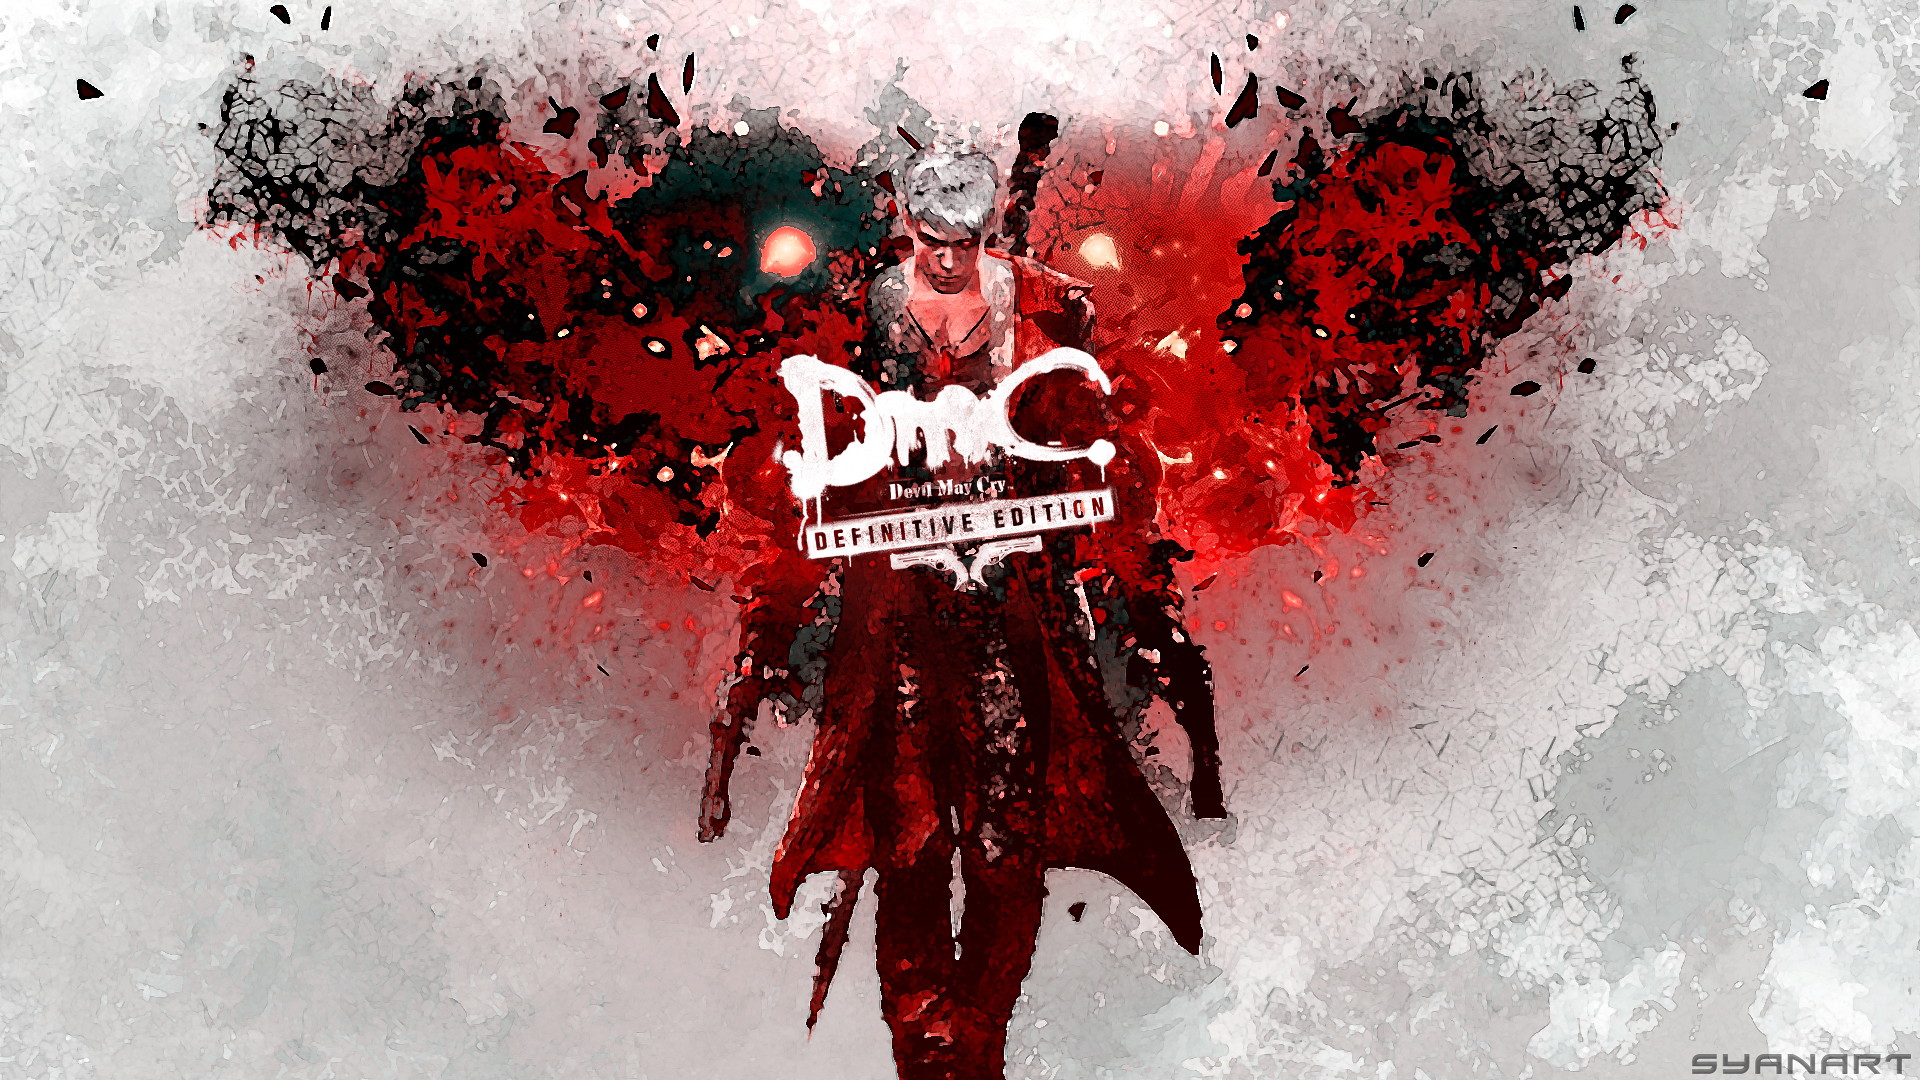 Dmc Devil May Cry Definitive Edition Wallpaper Syanart Station